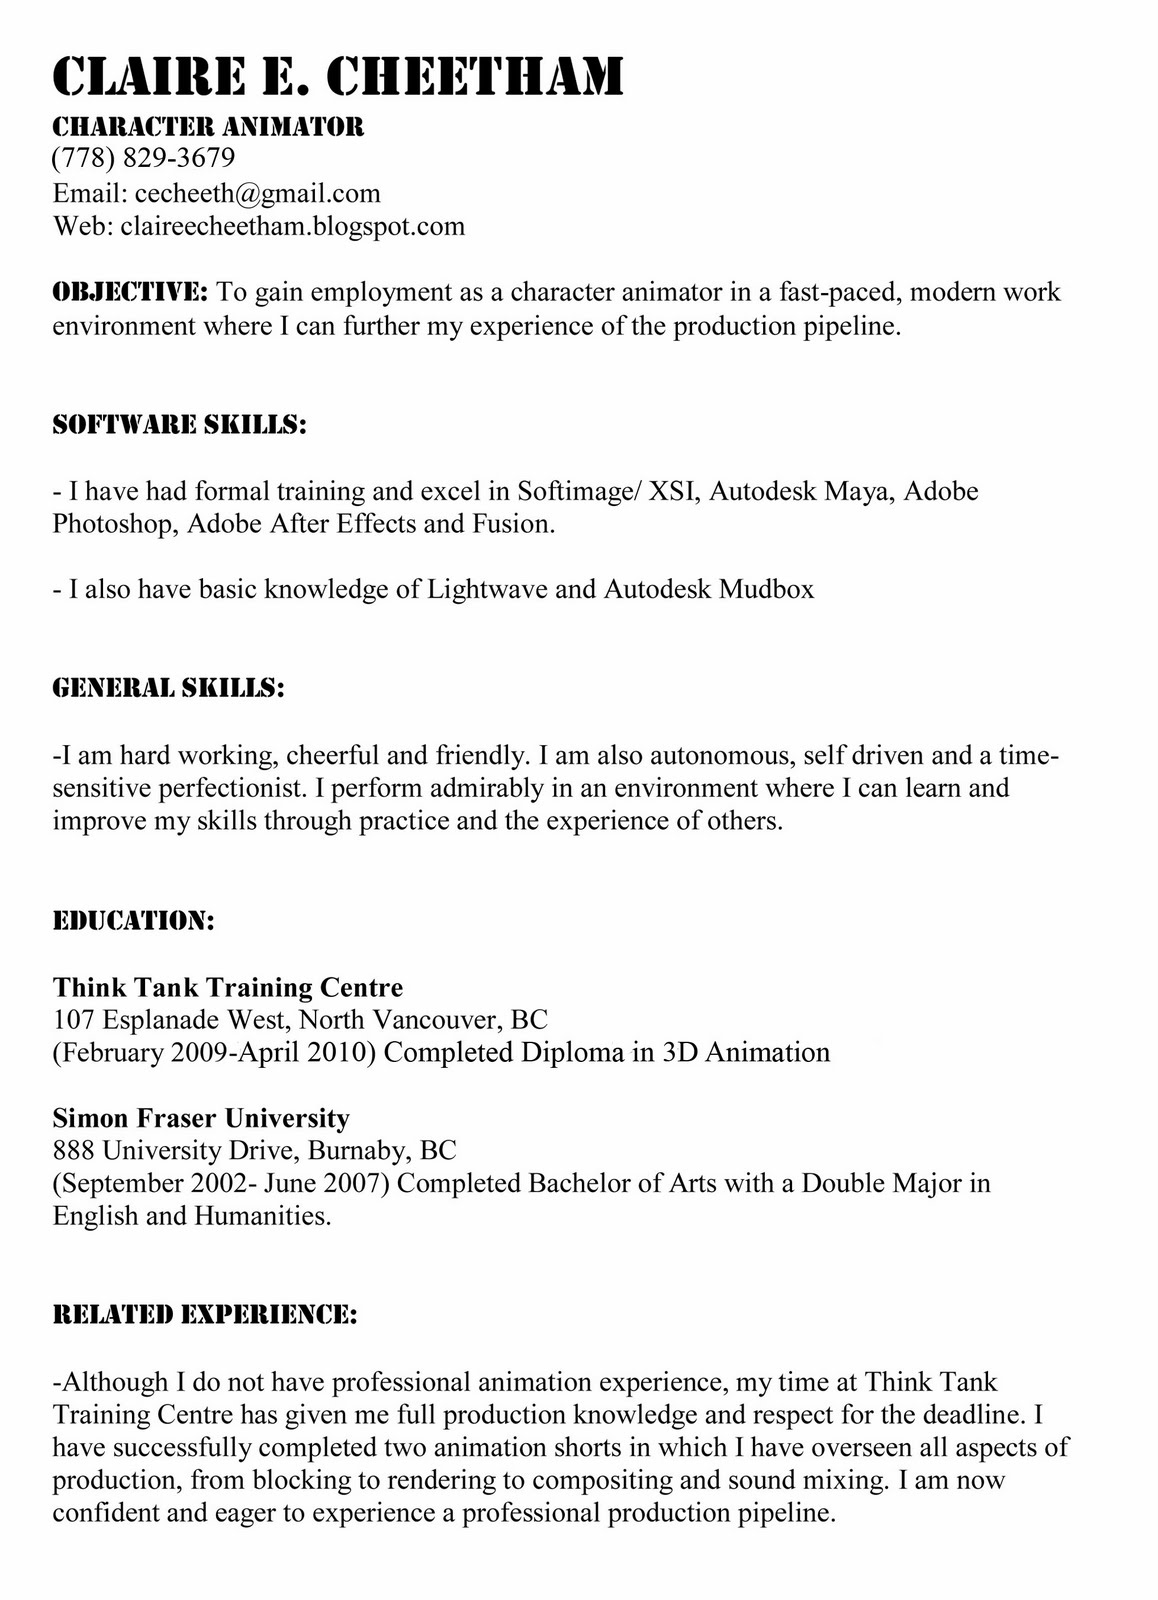 36 Activities To Put On Resume Example For A Job 2018